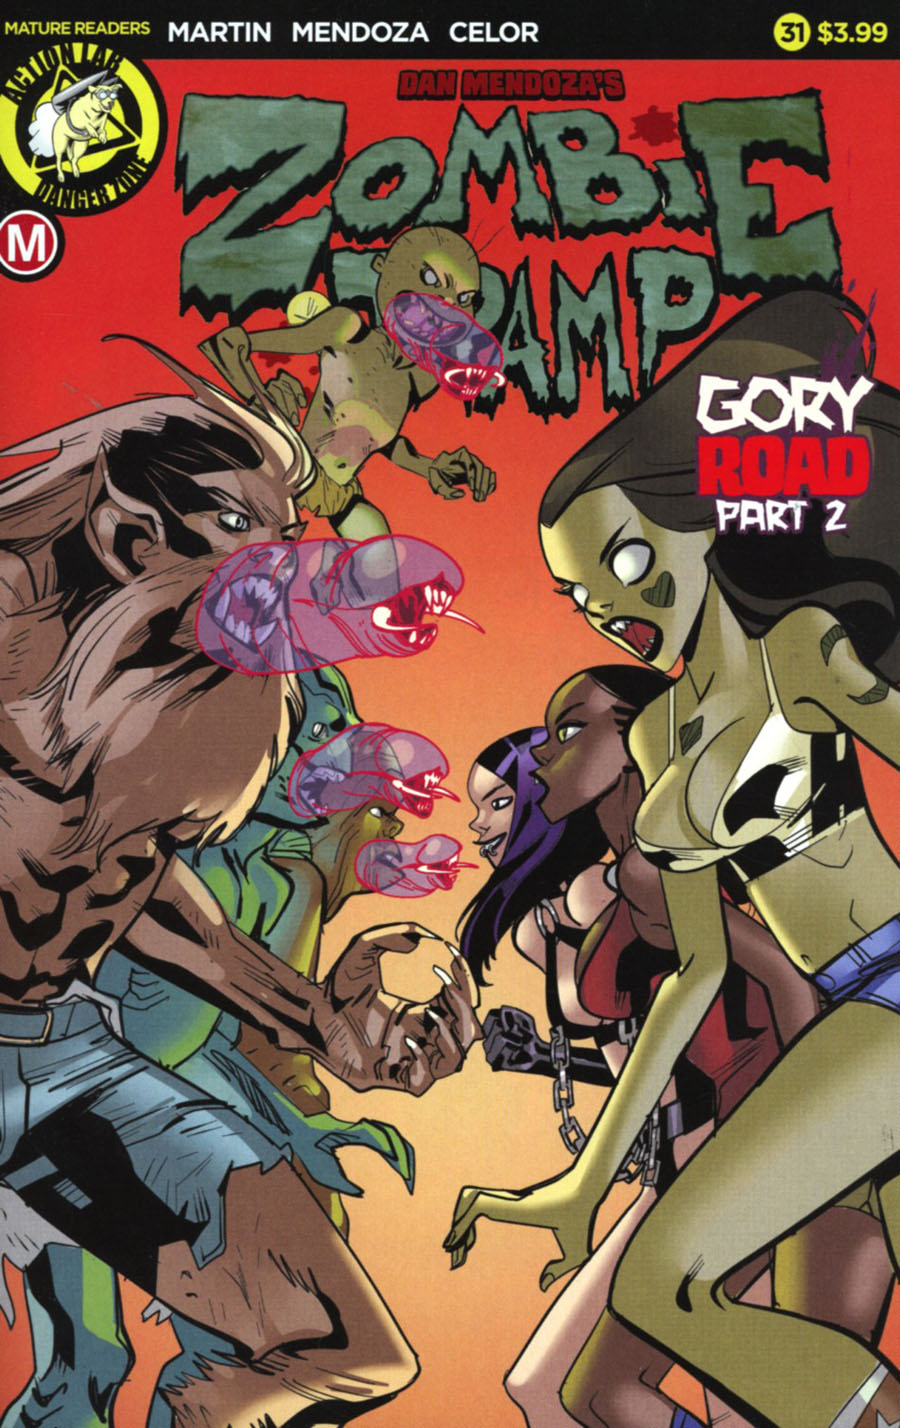 Zombie Tramp Vol 2 #31 Cover A Regular Celor Cover